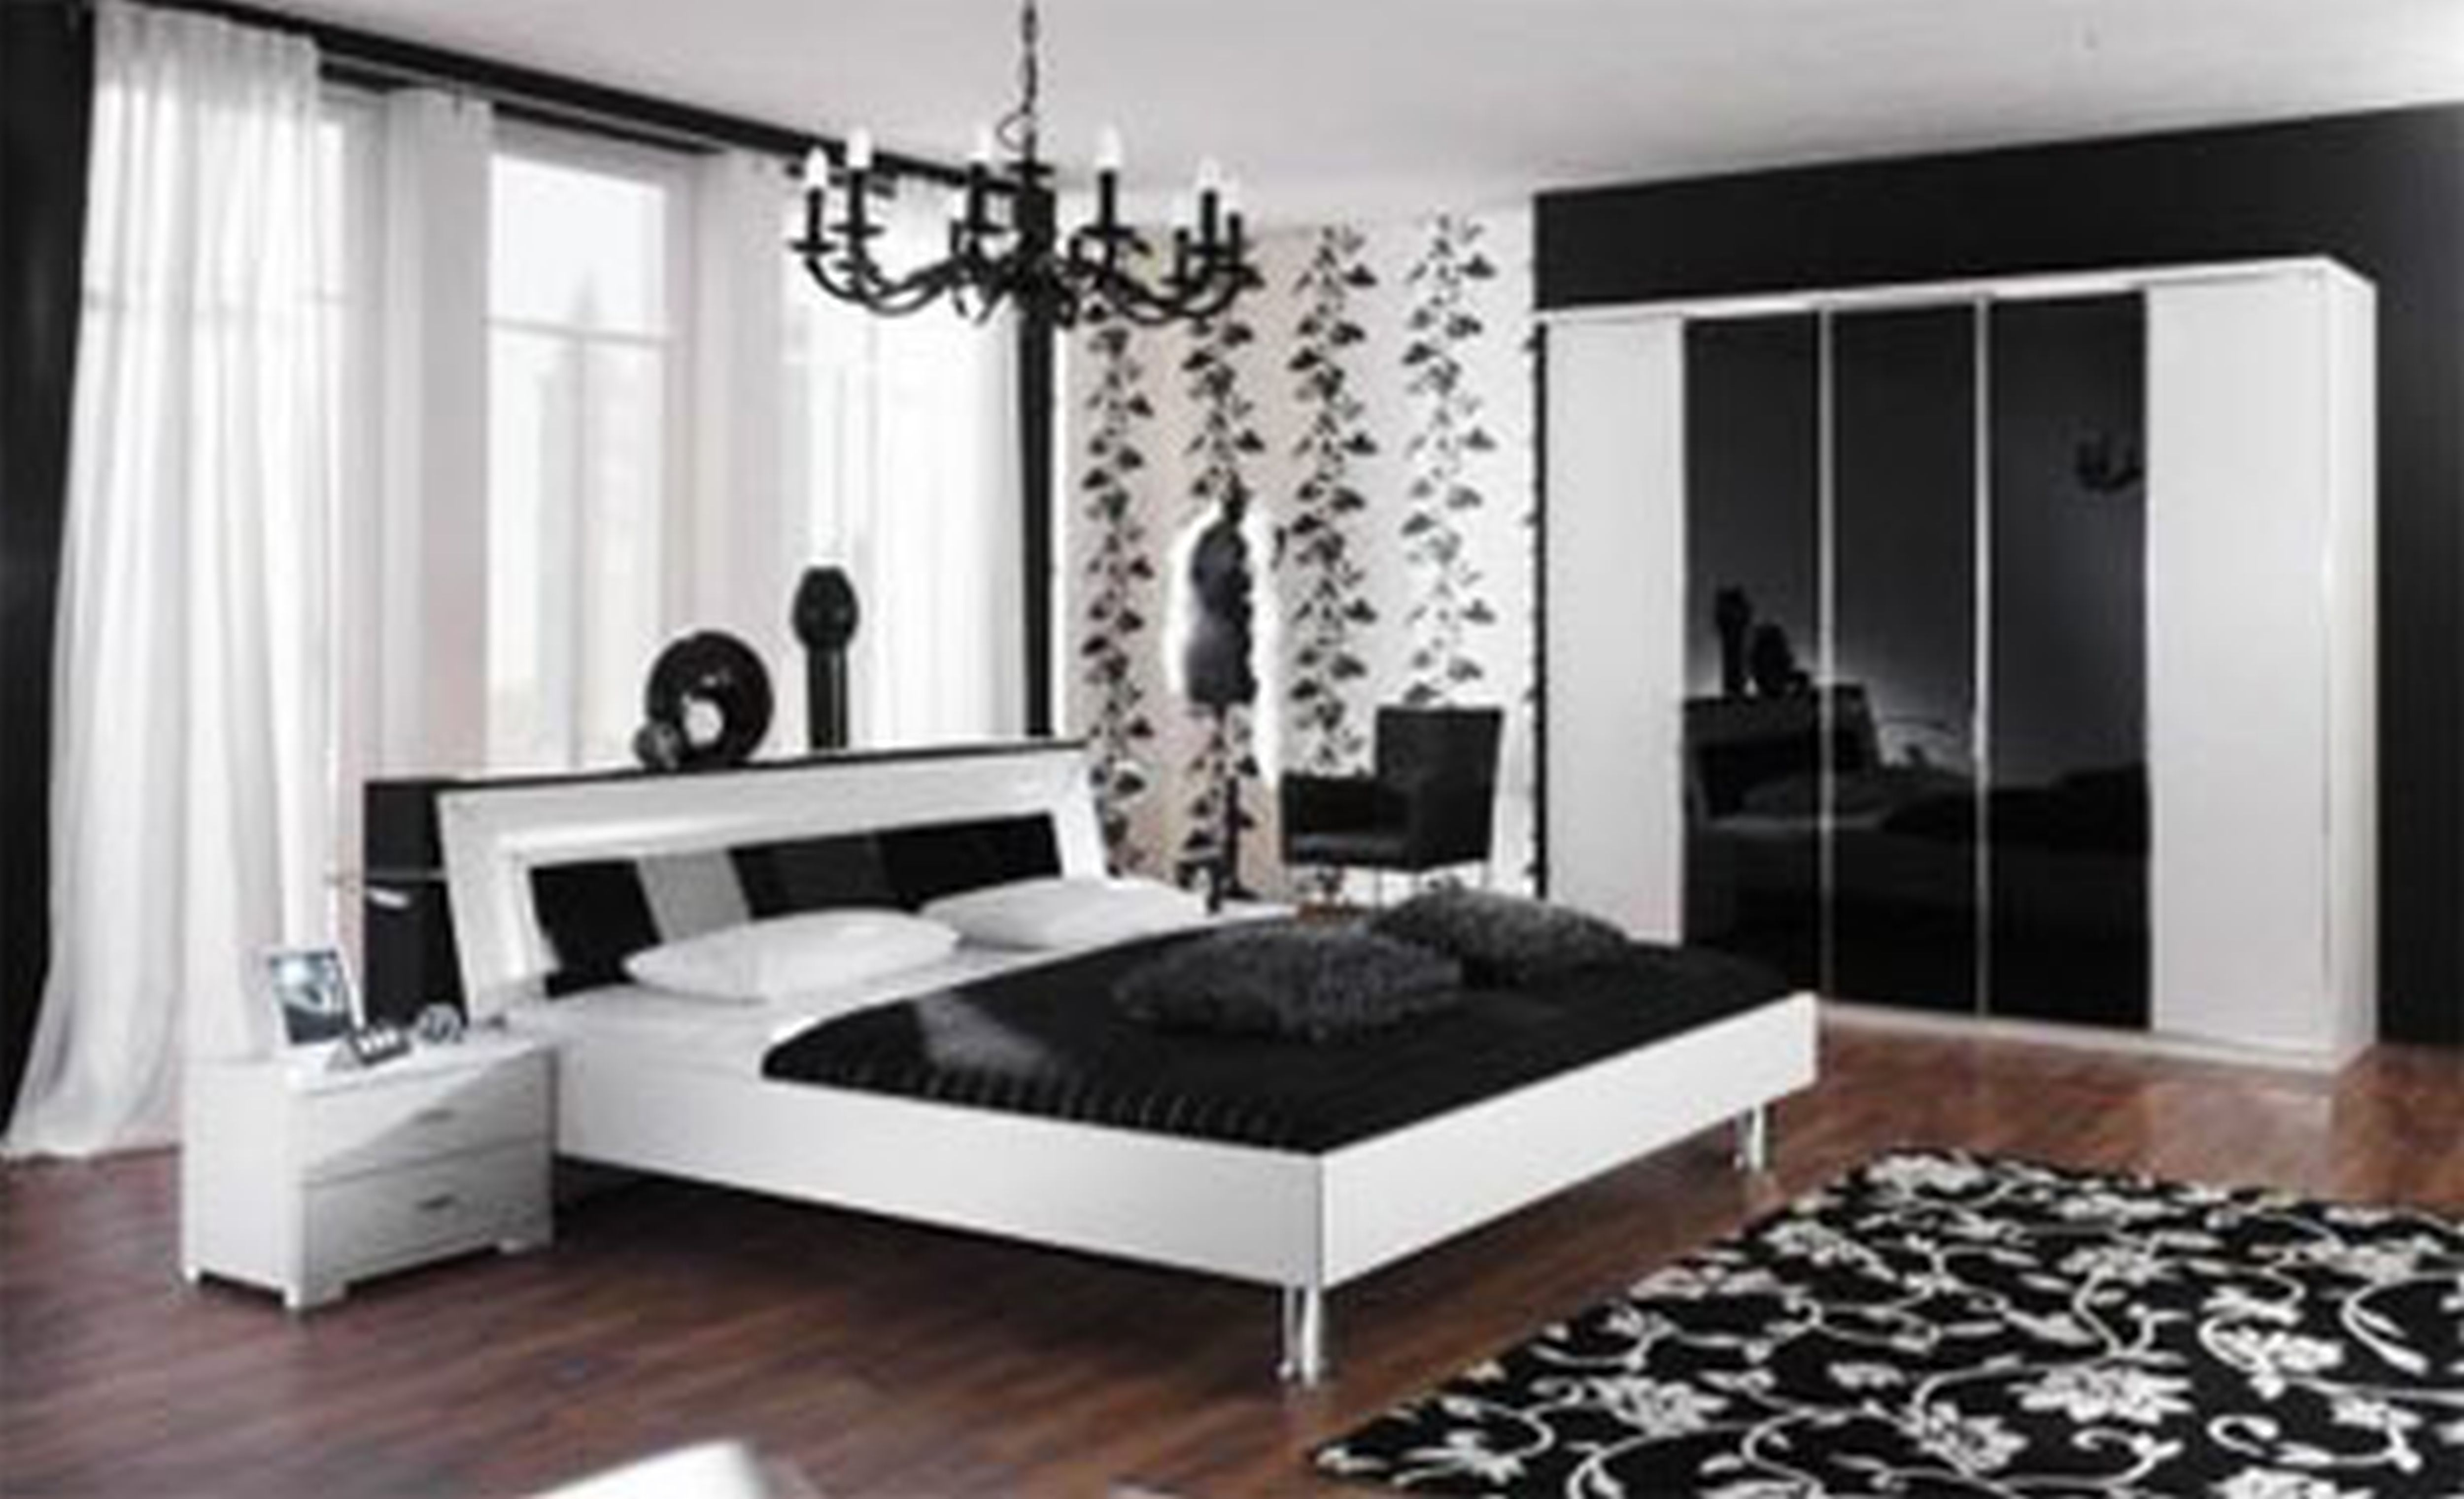 3 black and white bedroom ideas midcityeast Dark curtains small room